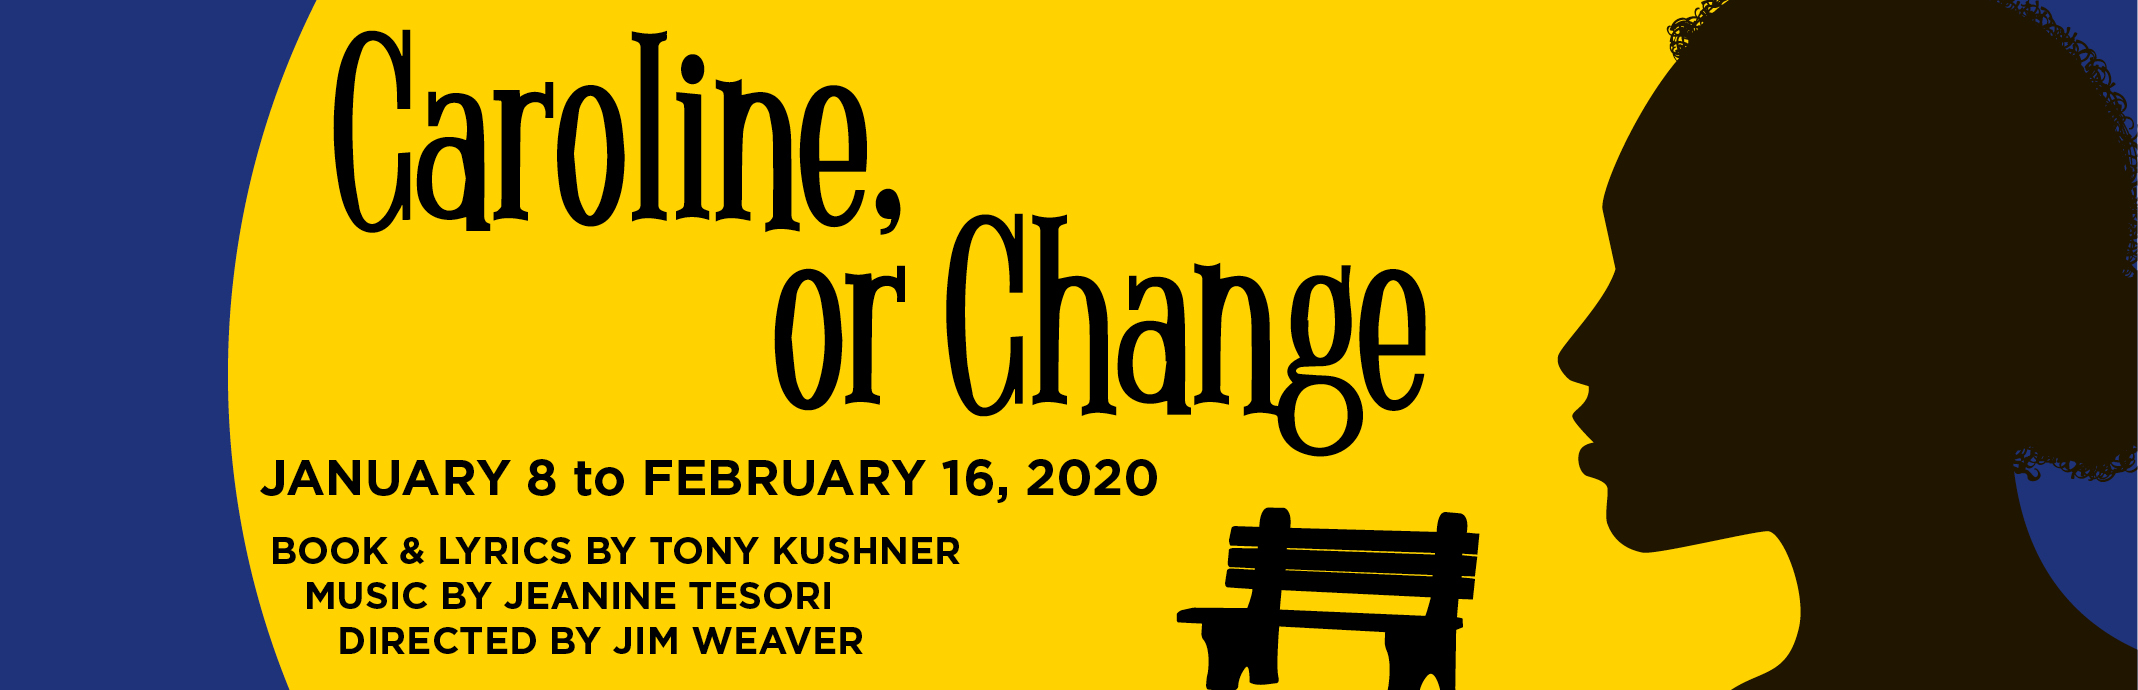 Caroline or Change, January 8 to February 16, 2020, Books and Lyrics by Tony Kushner, Music by Jeanine Tesori, Directed by Jim Weaver